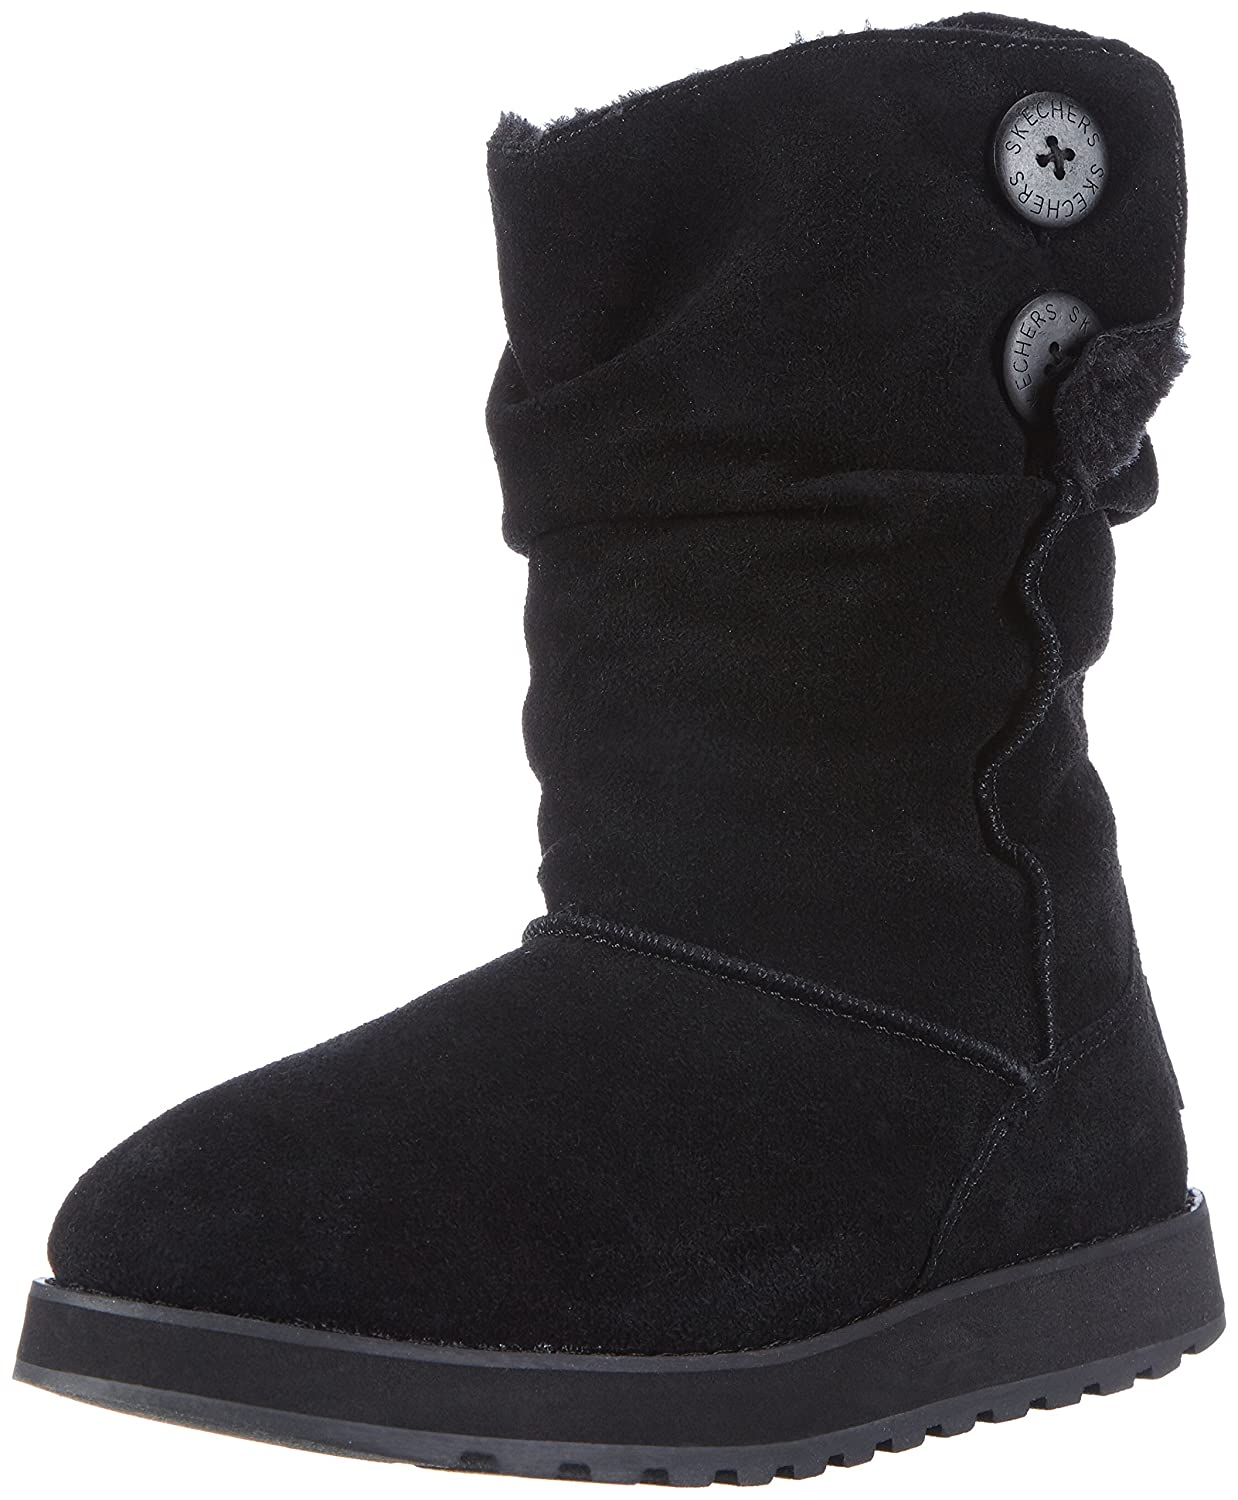 Skechers Botas Para Mujer ZfxLE2i